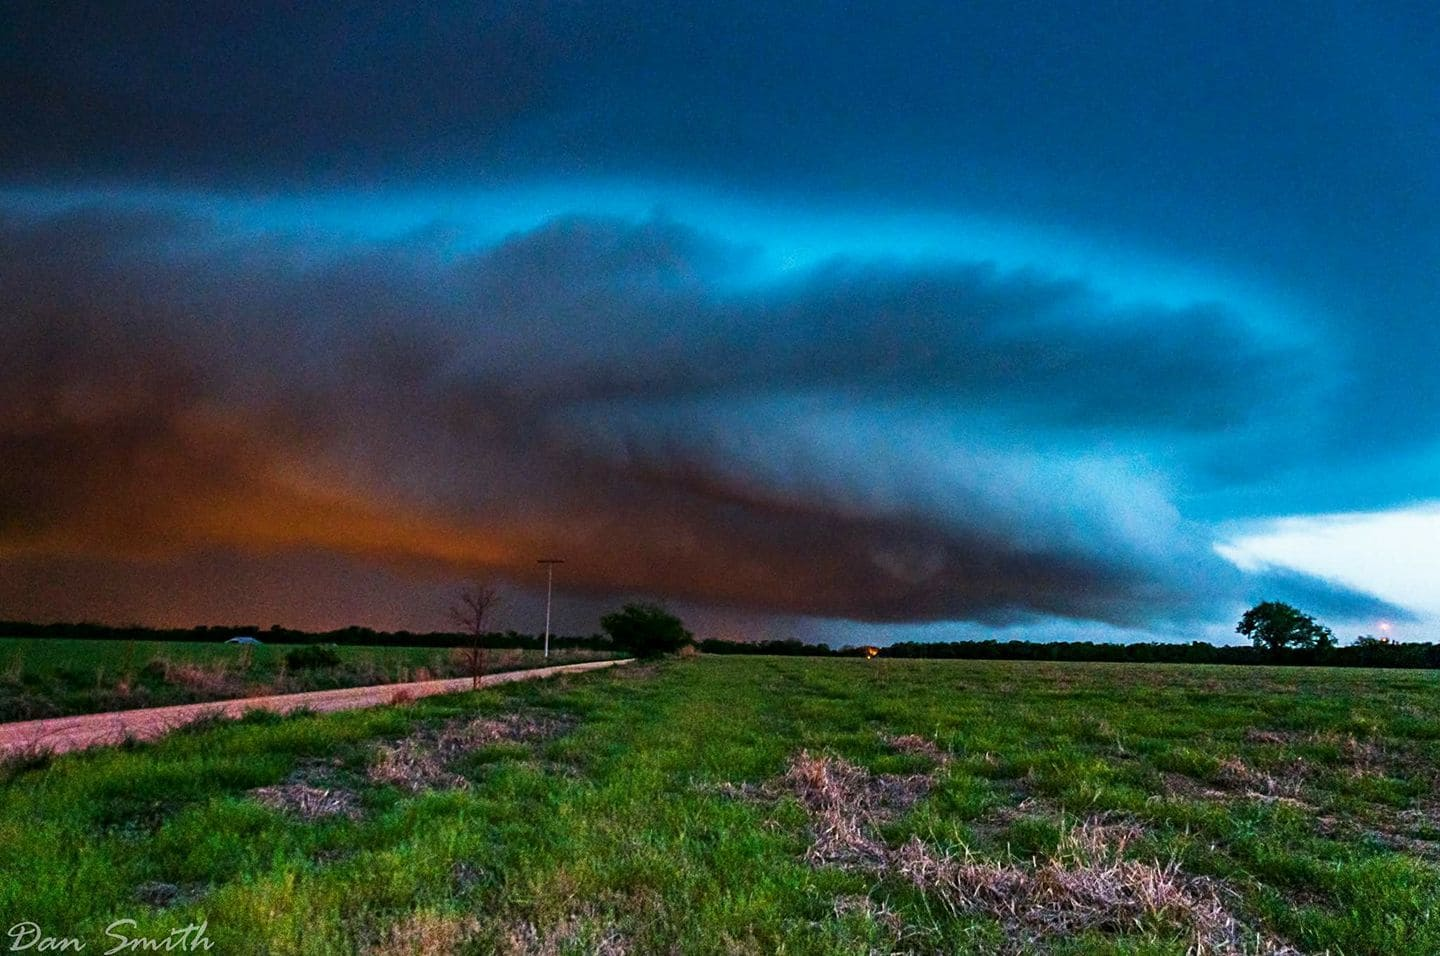 A likely Bowl funnel Under This Night Time supercell two nights ago near Copeland Oklahoma. It never went tornado warned but had great inflow and motion. She scored pretty high on my check list for a marginal risk area.